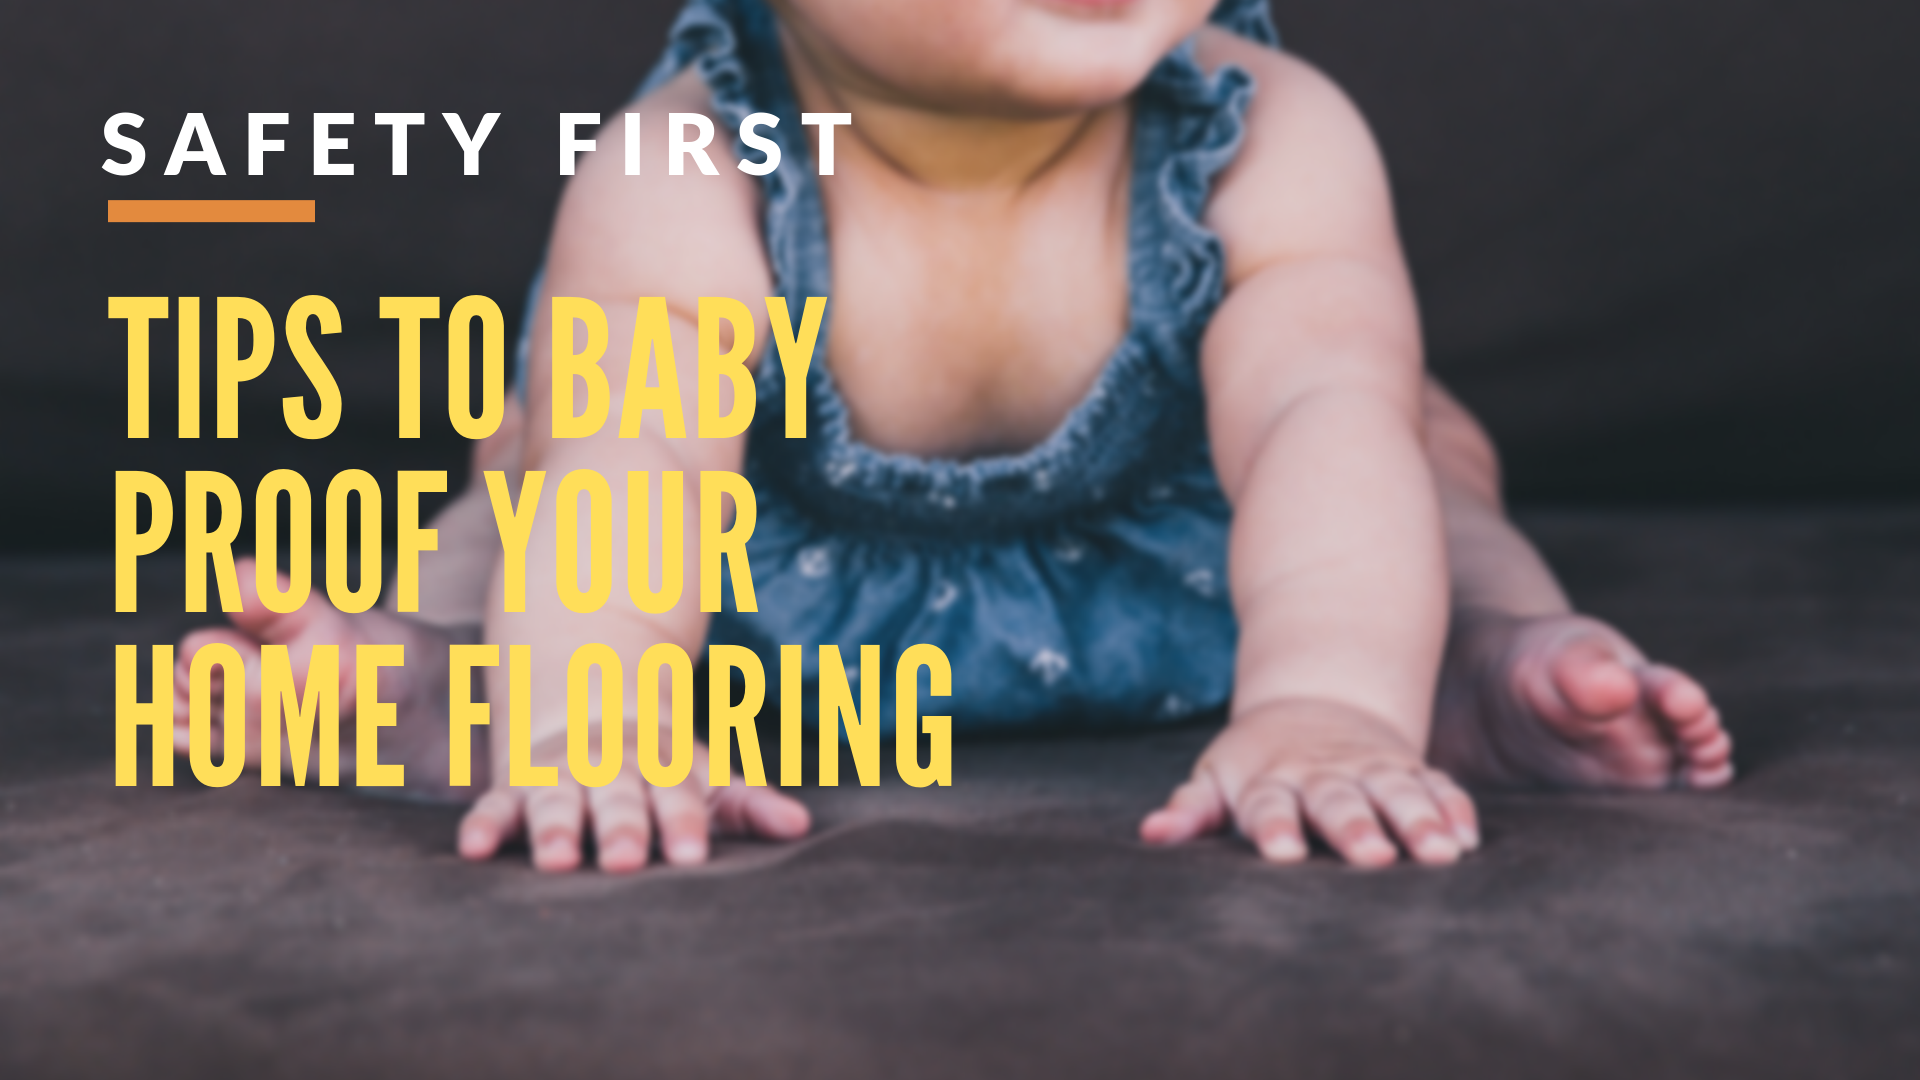 Safety First: Tips to Baby Proof Your Home Flooring